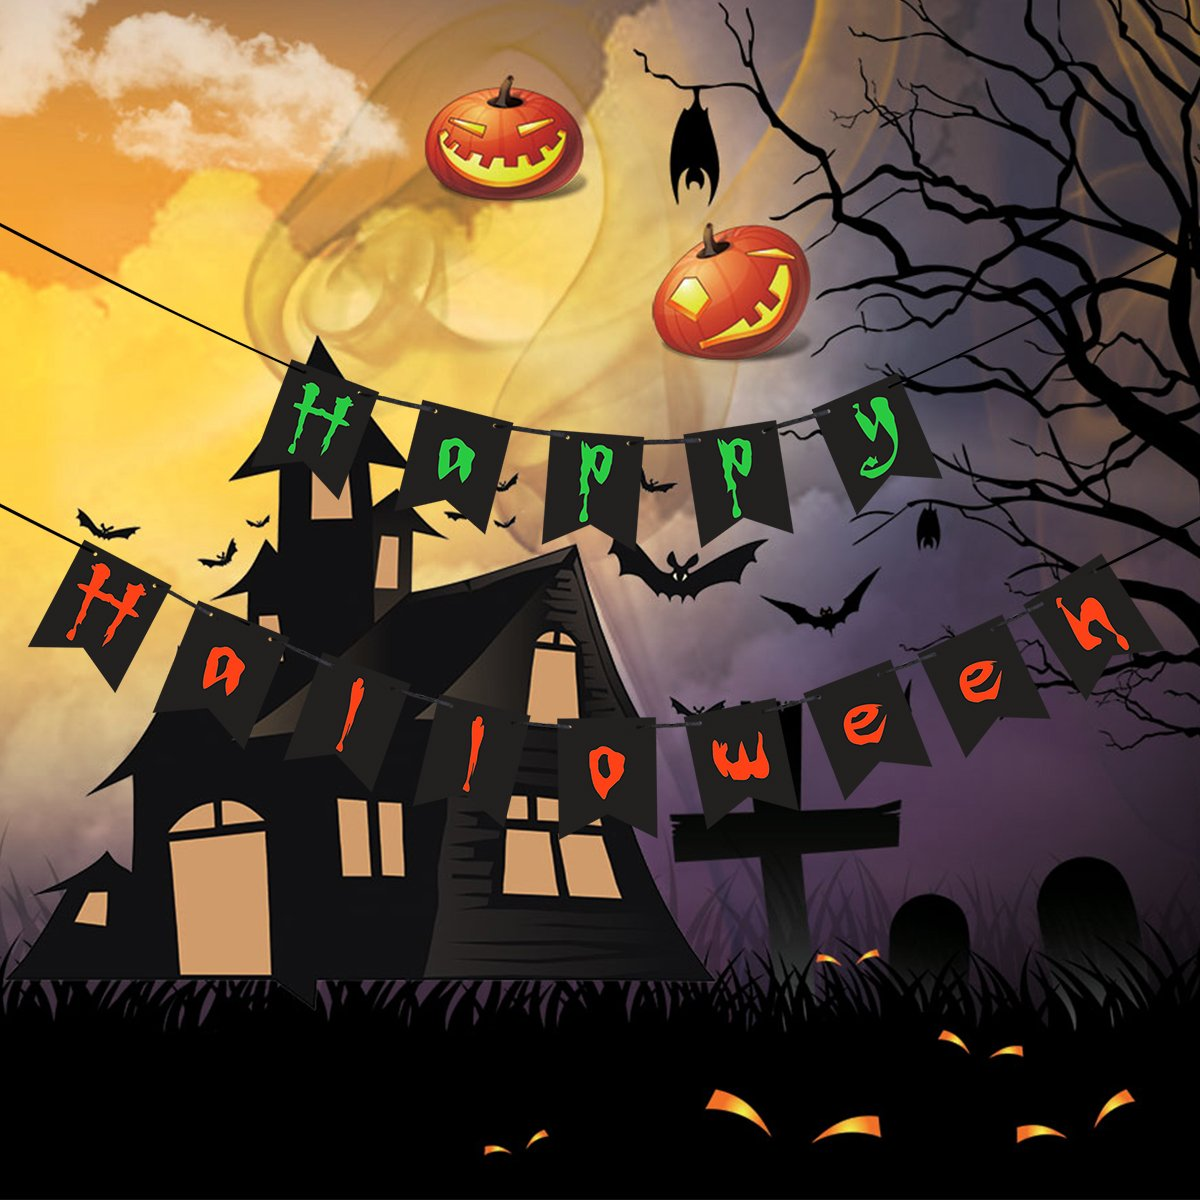 amazoncom happy halloween banner flags party banners halloween flags for halloween party decorations home kitchen